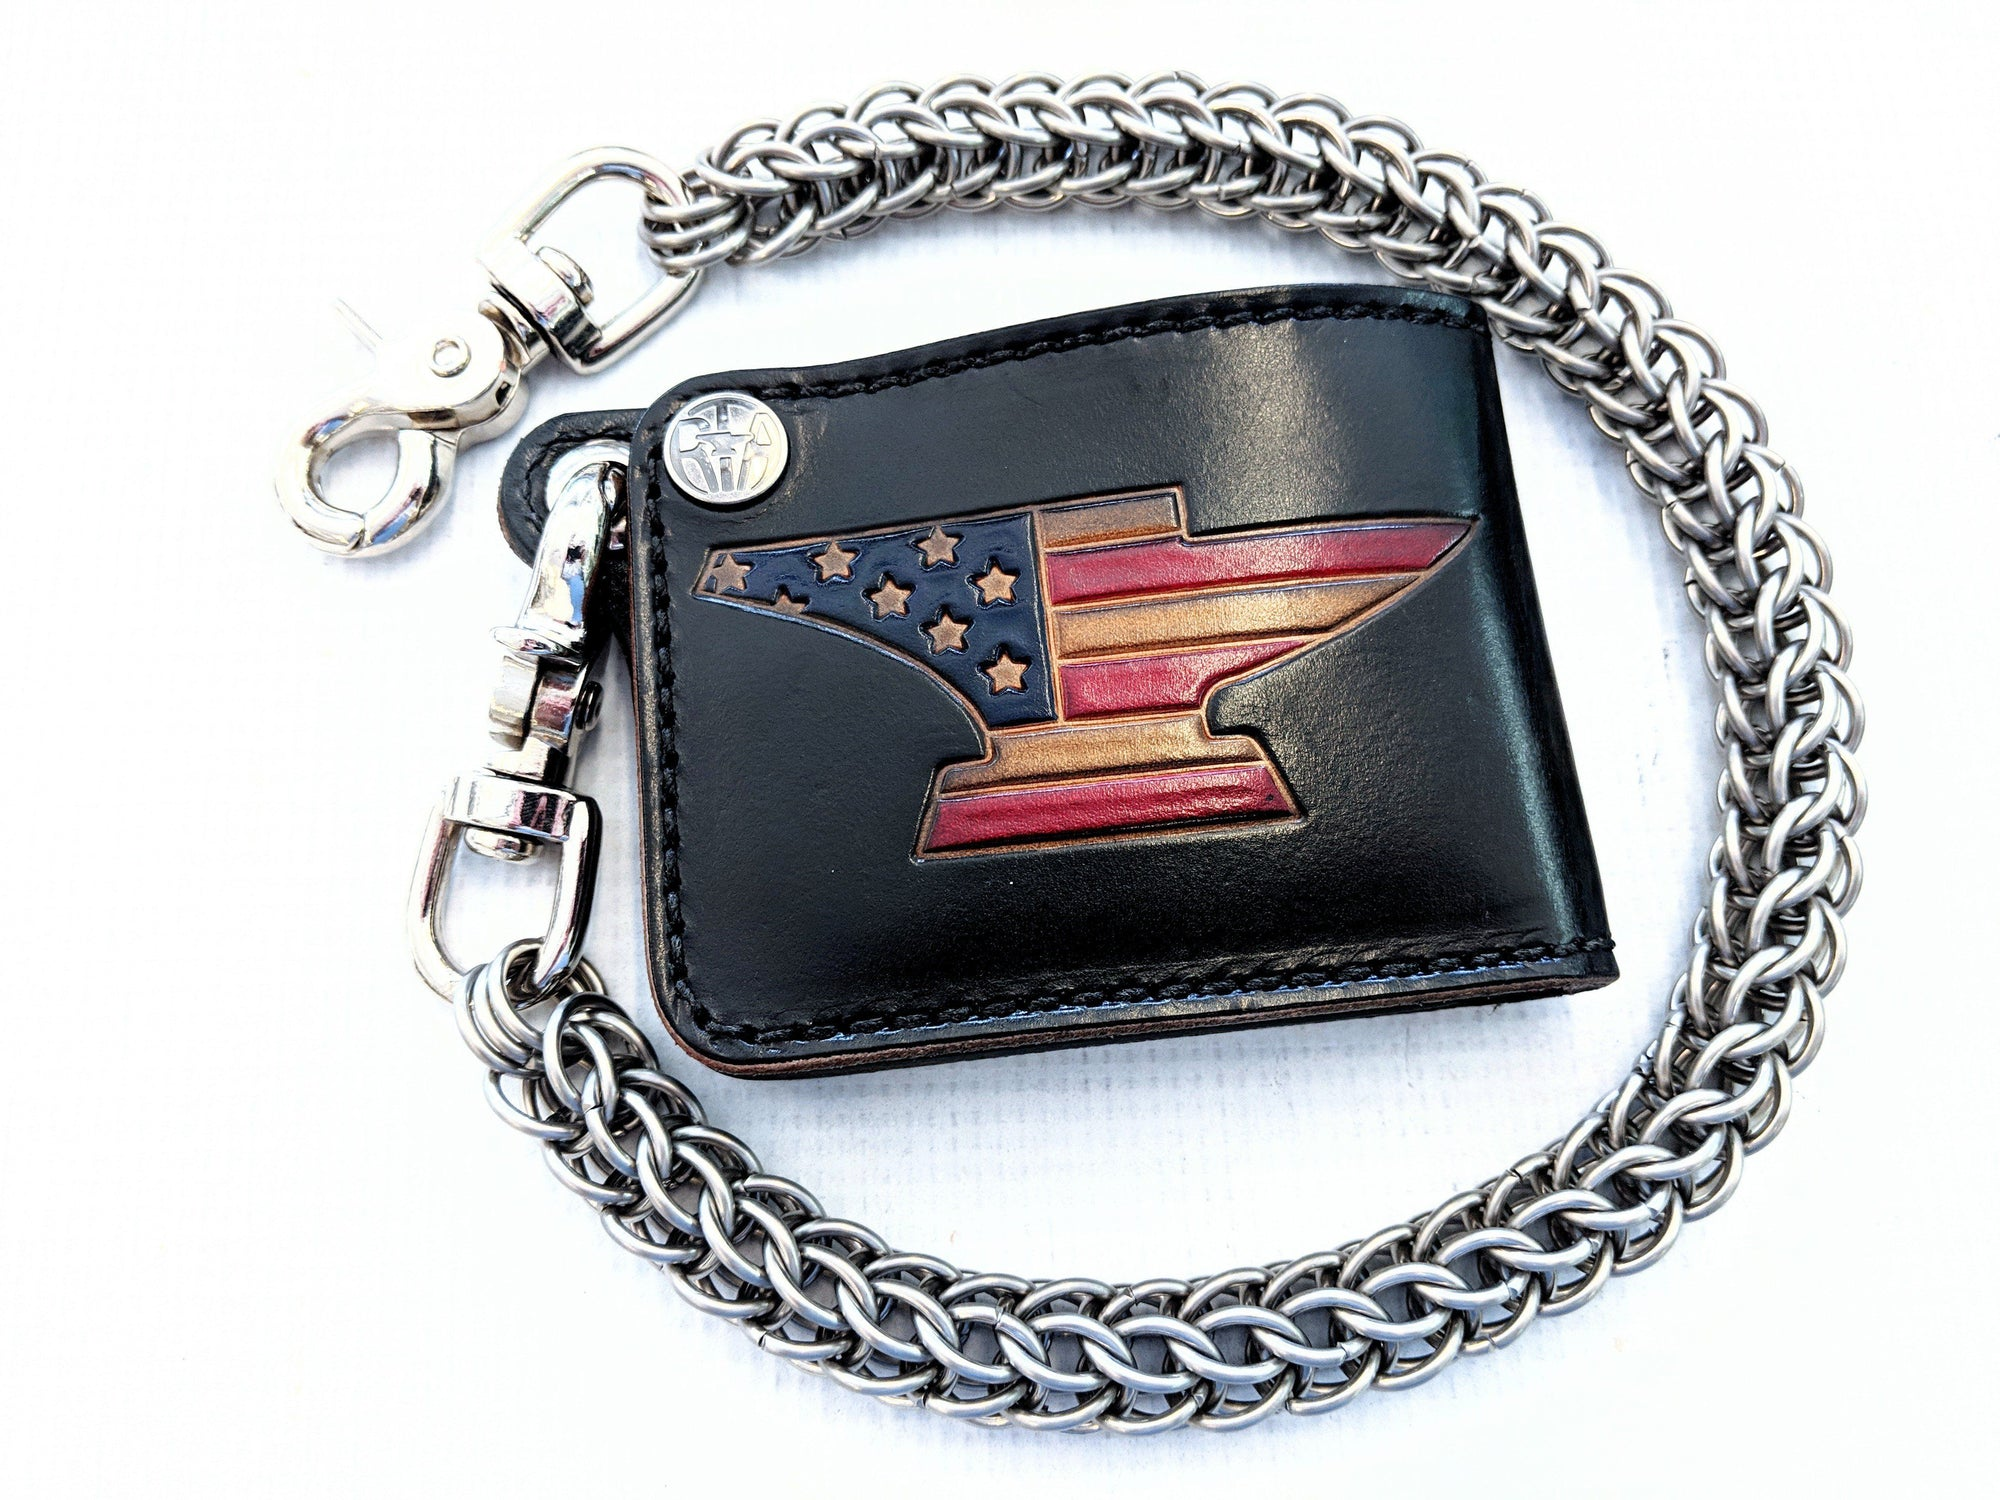 Hand Stained Mini Bifold Leather Chain Wallet - Anvil American Flag - Anvil Customs